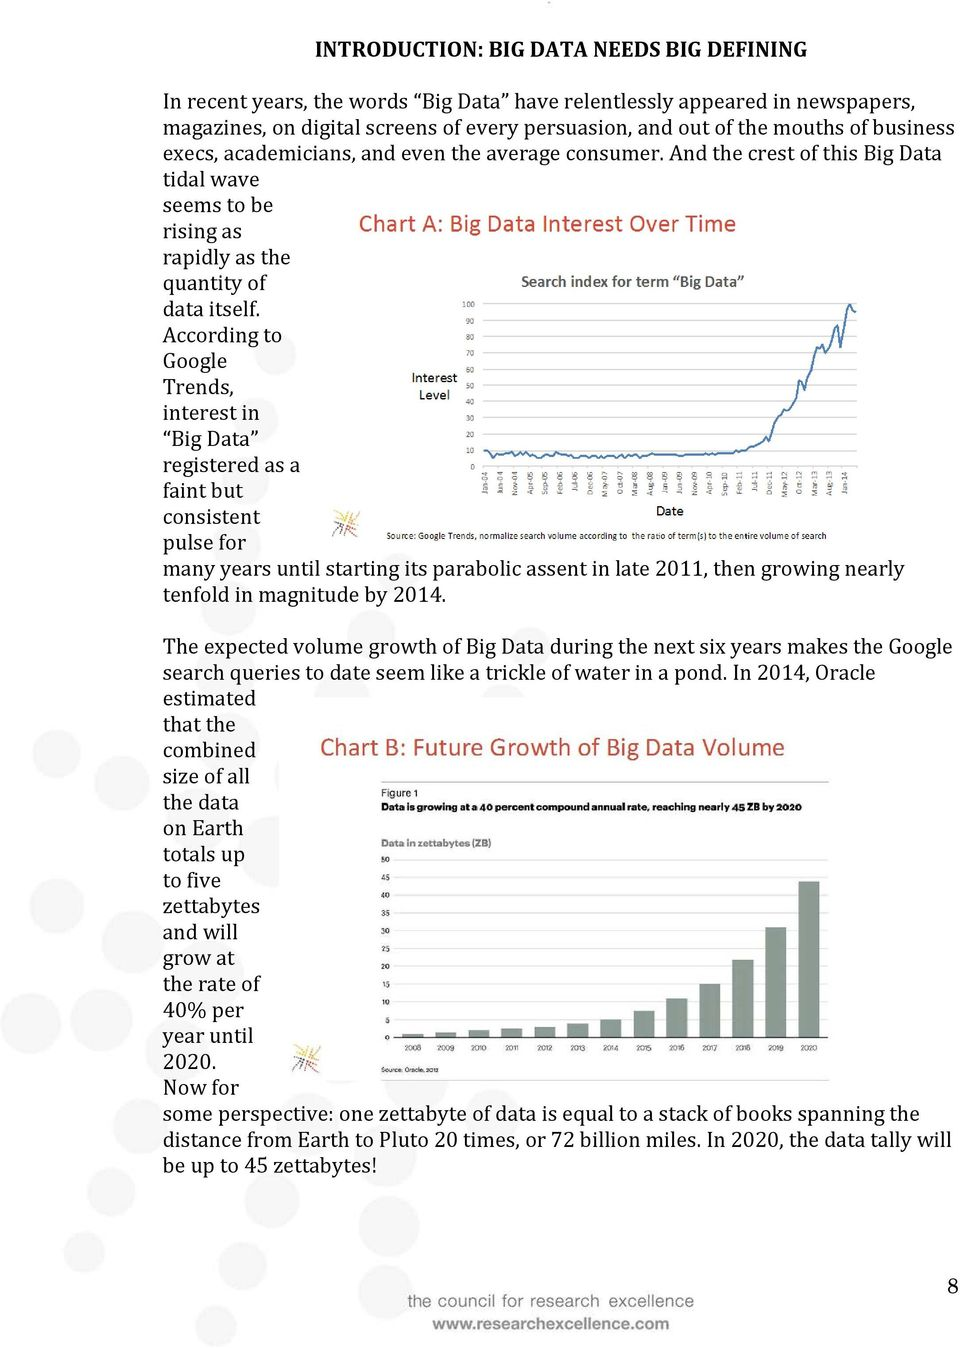 According to Google Trends, interest in Big Data registered as a faint but consistent pulse for many years until starting its parabolic assent in late 2011, then growing nearly tenfold in magnitude